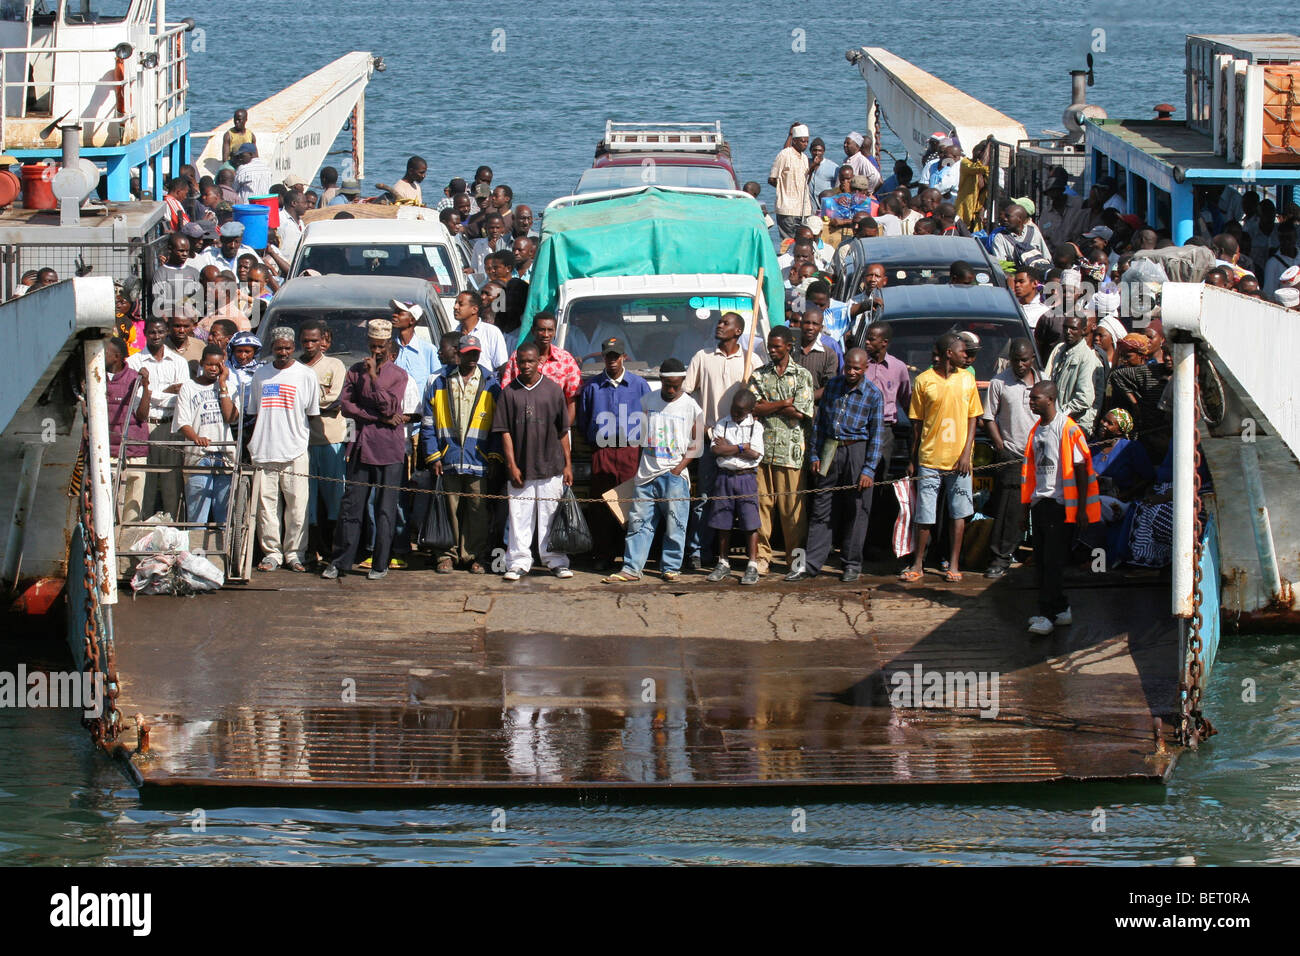 Black passengers and vehicles on ferry boat at Dar es Salaam, Tanzania, Africa - Stock Image